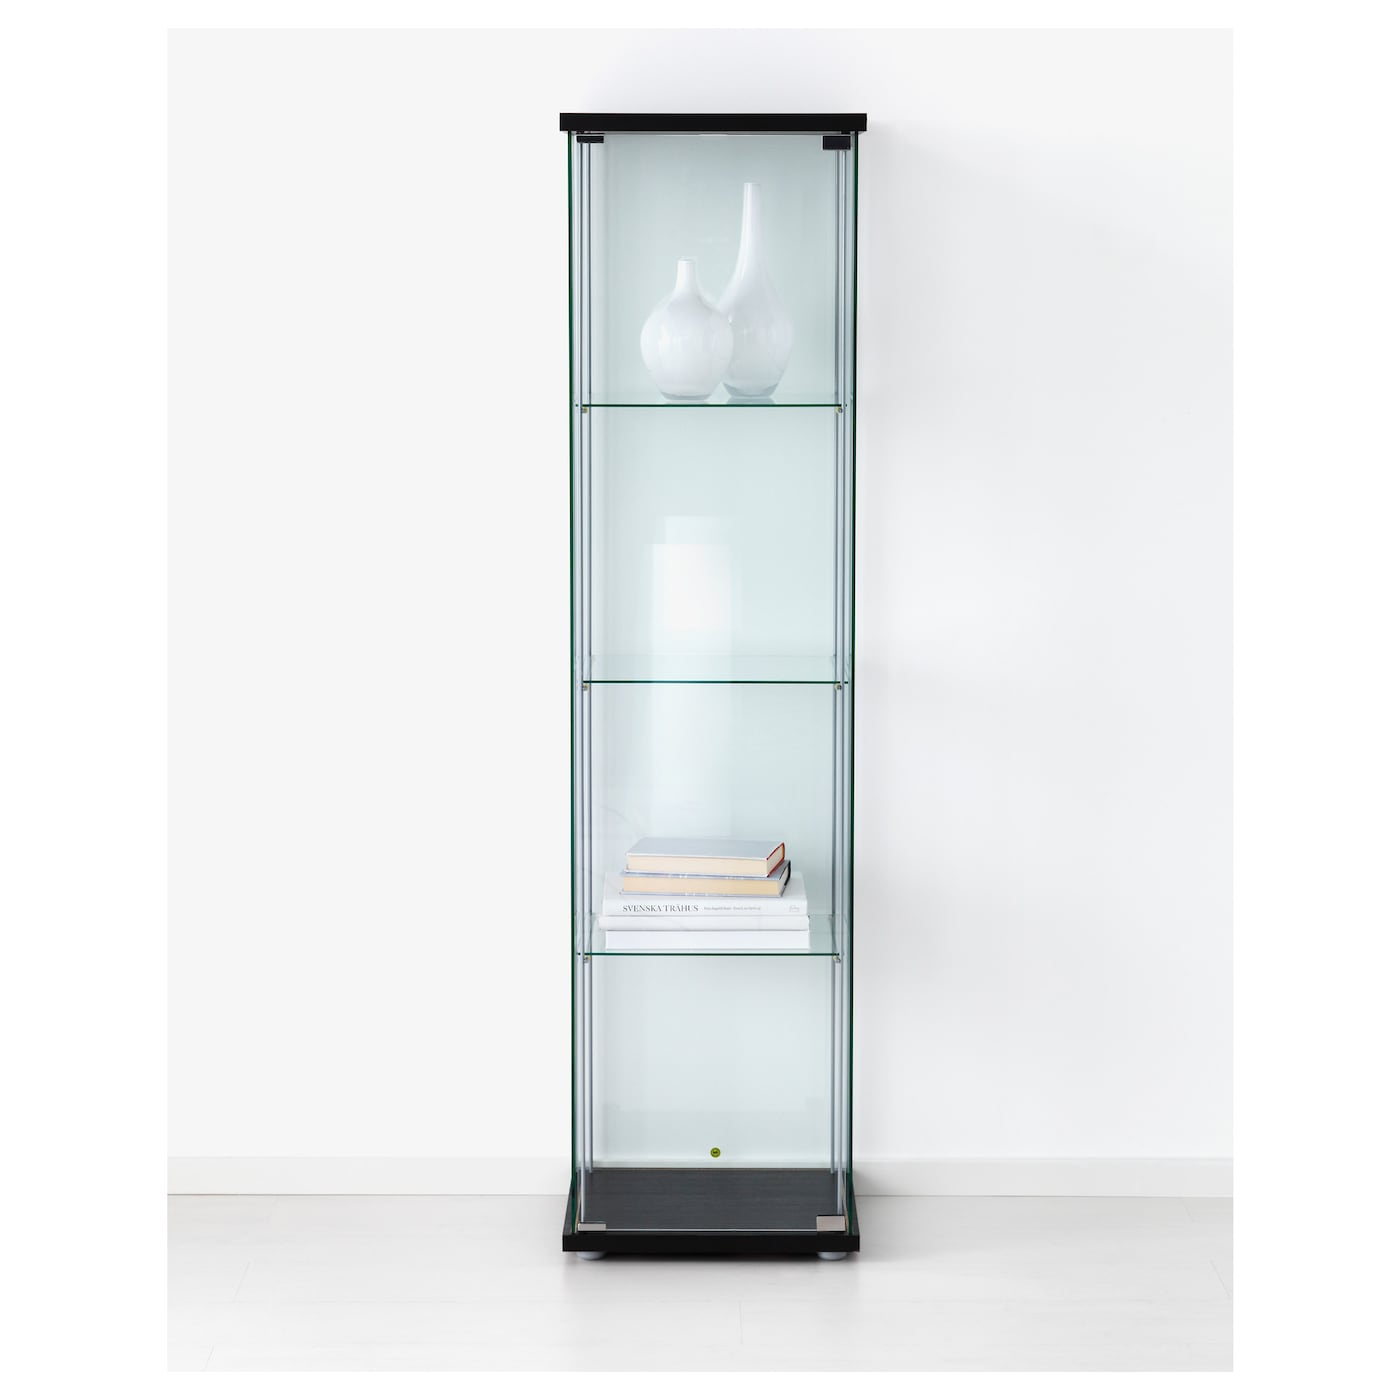 Detolf glass door cabinet black brown 43 x 163 cm ikea - Ikea glass cabinets ...